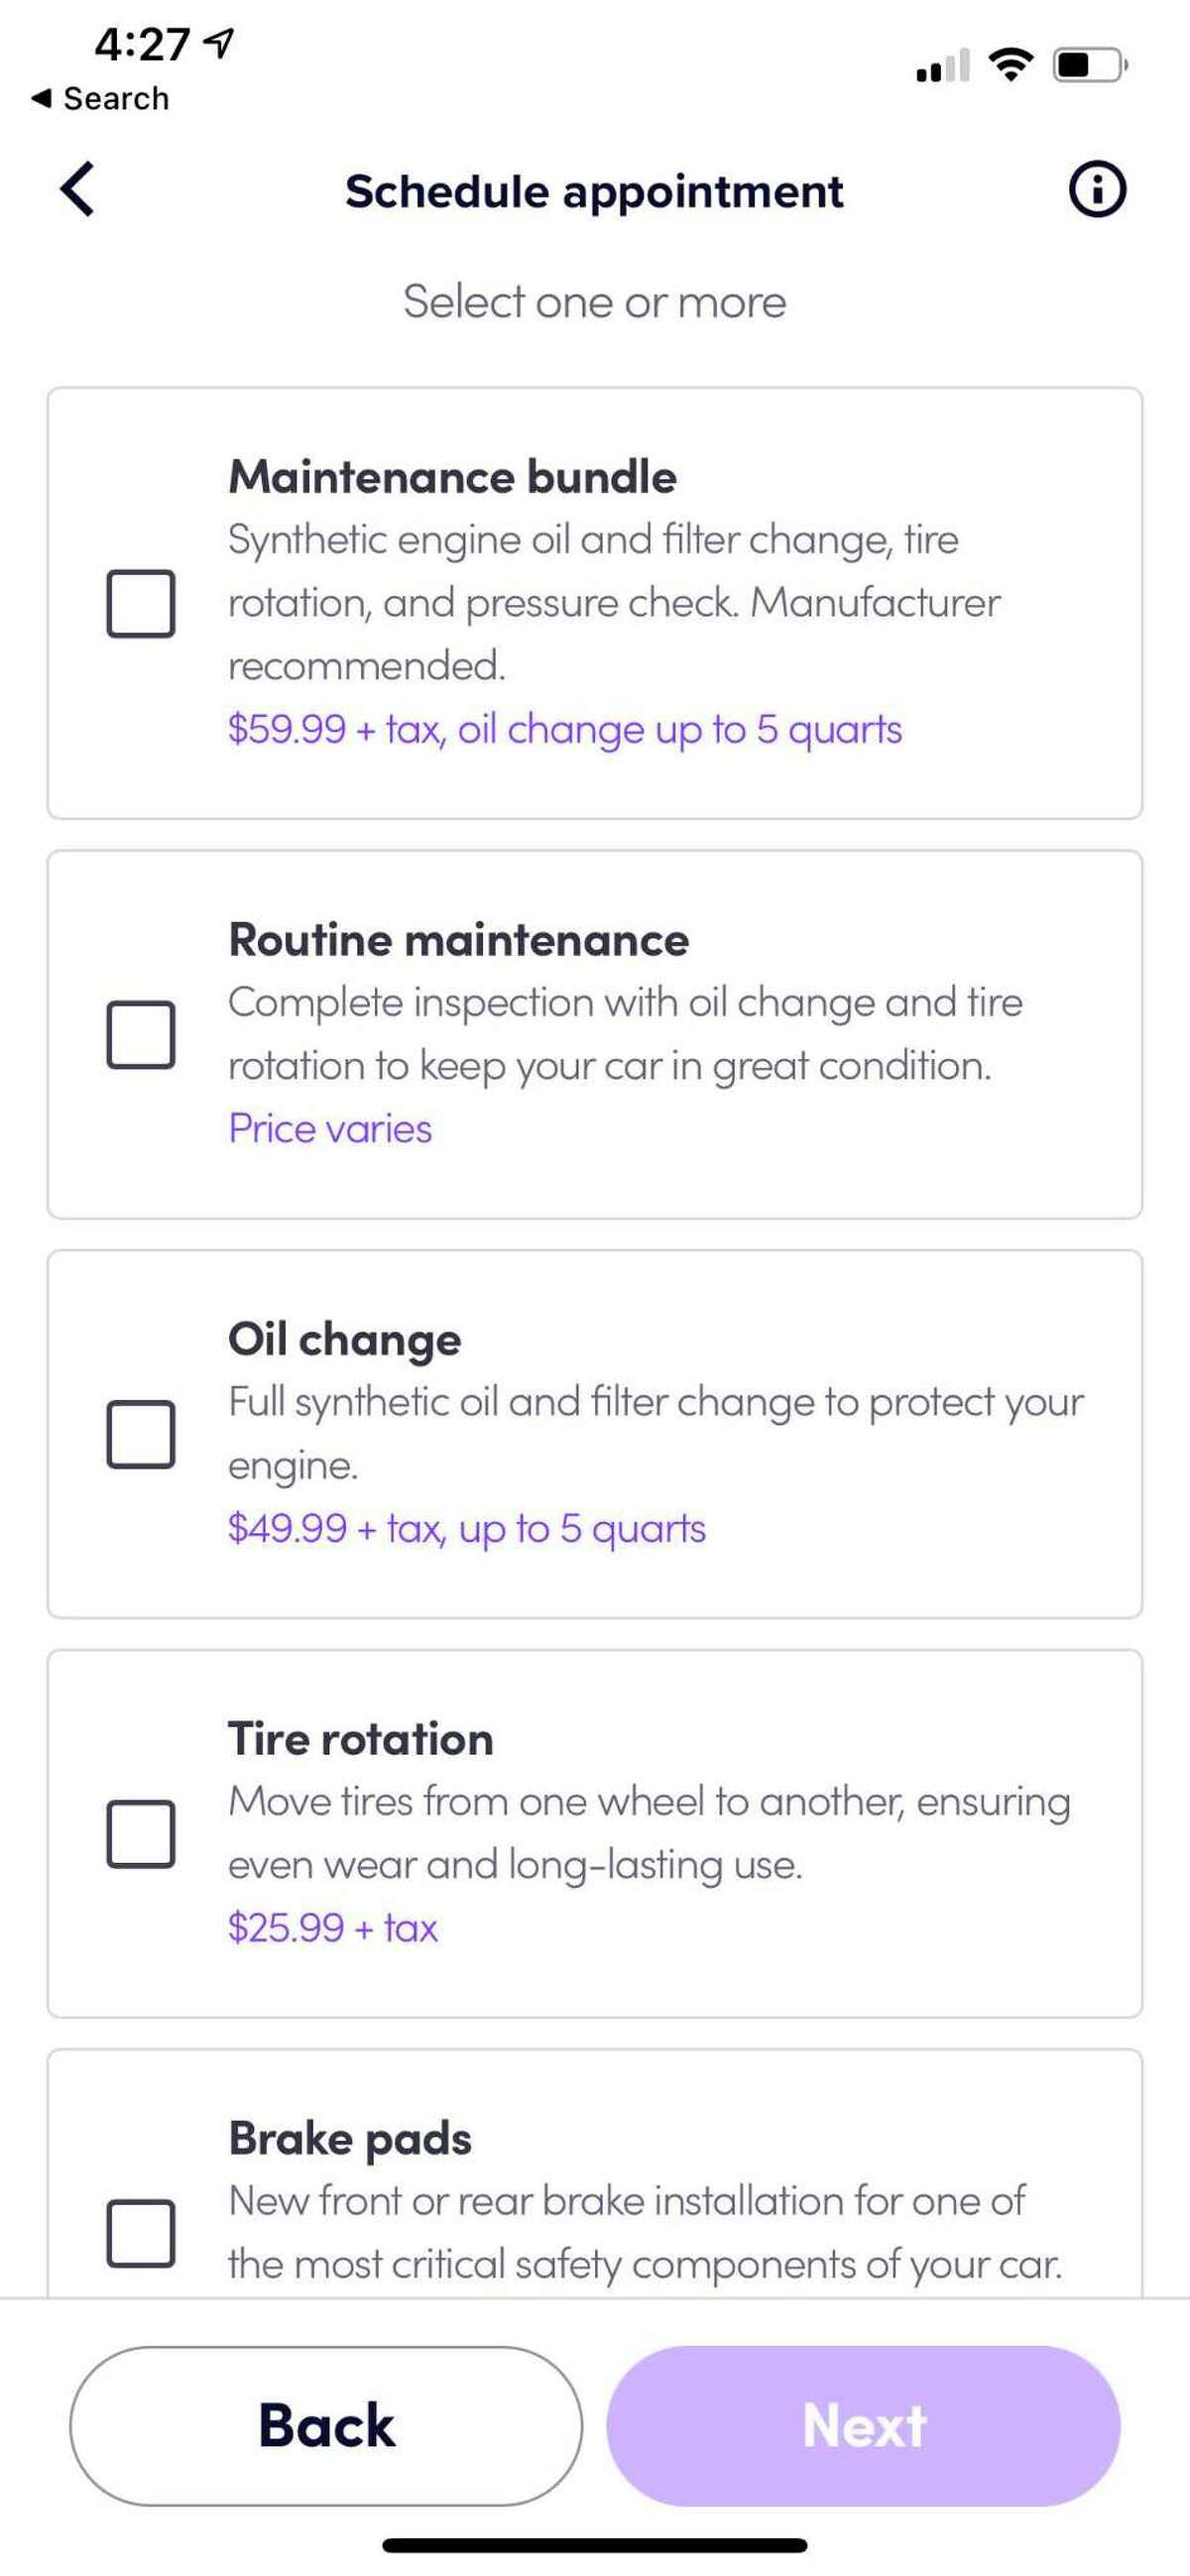 Lyft launches auto care services in Houston. Customers can book service appointments through the menu bar in the app's top left corner.